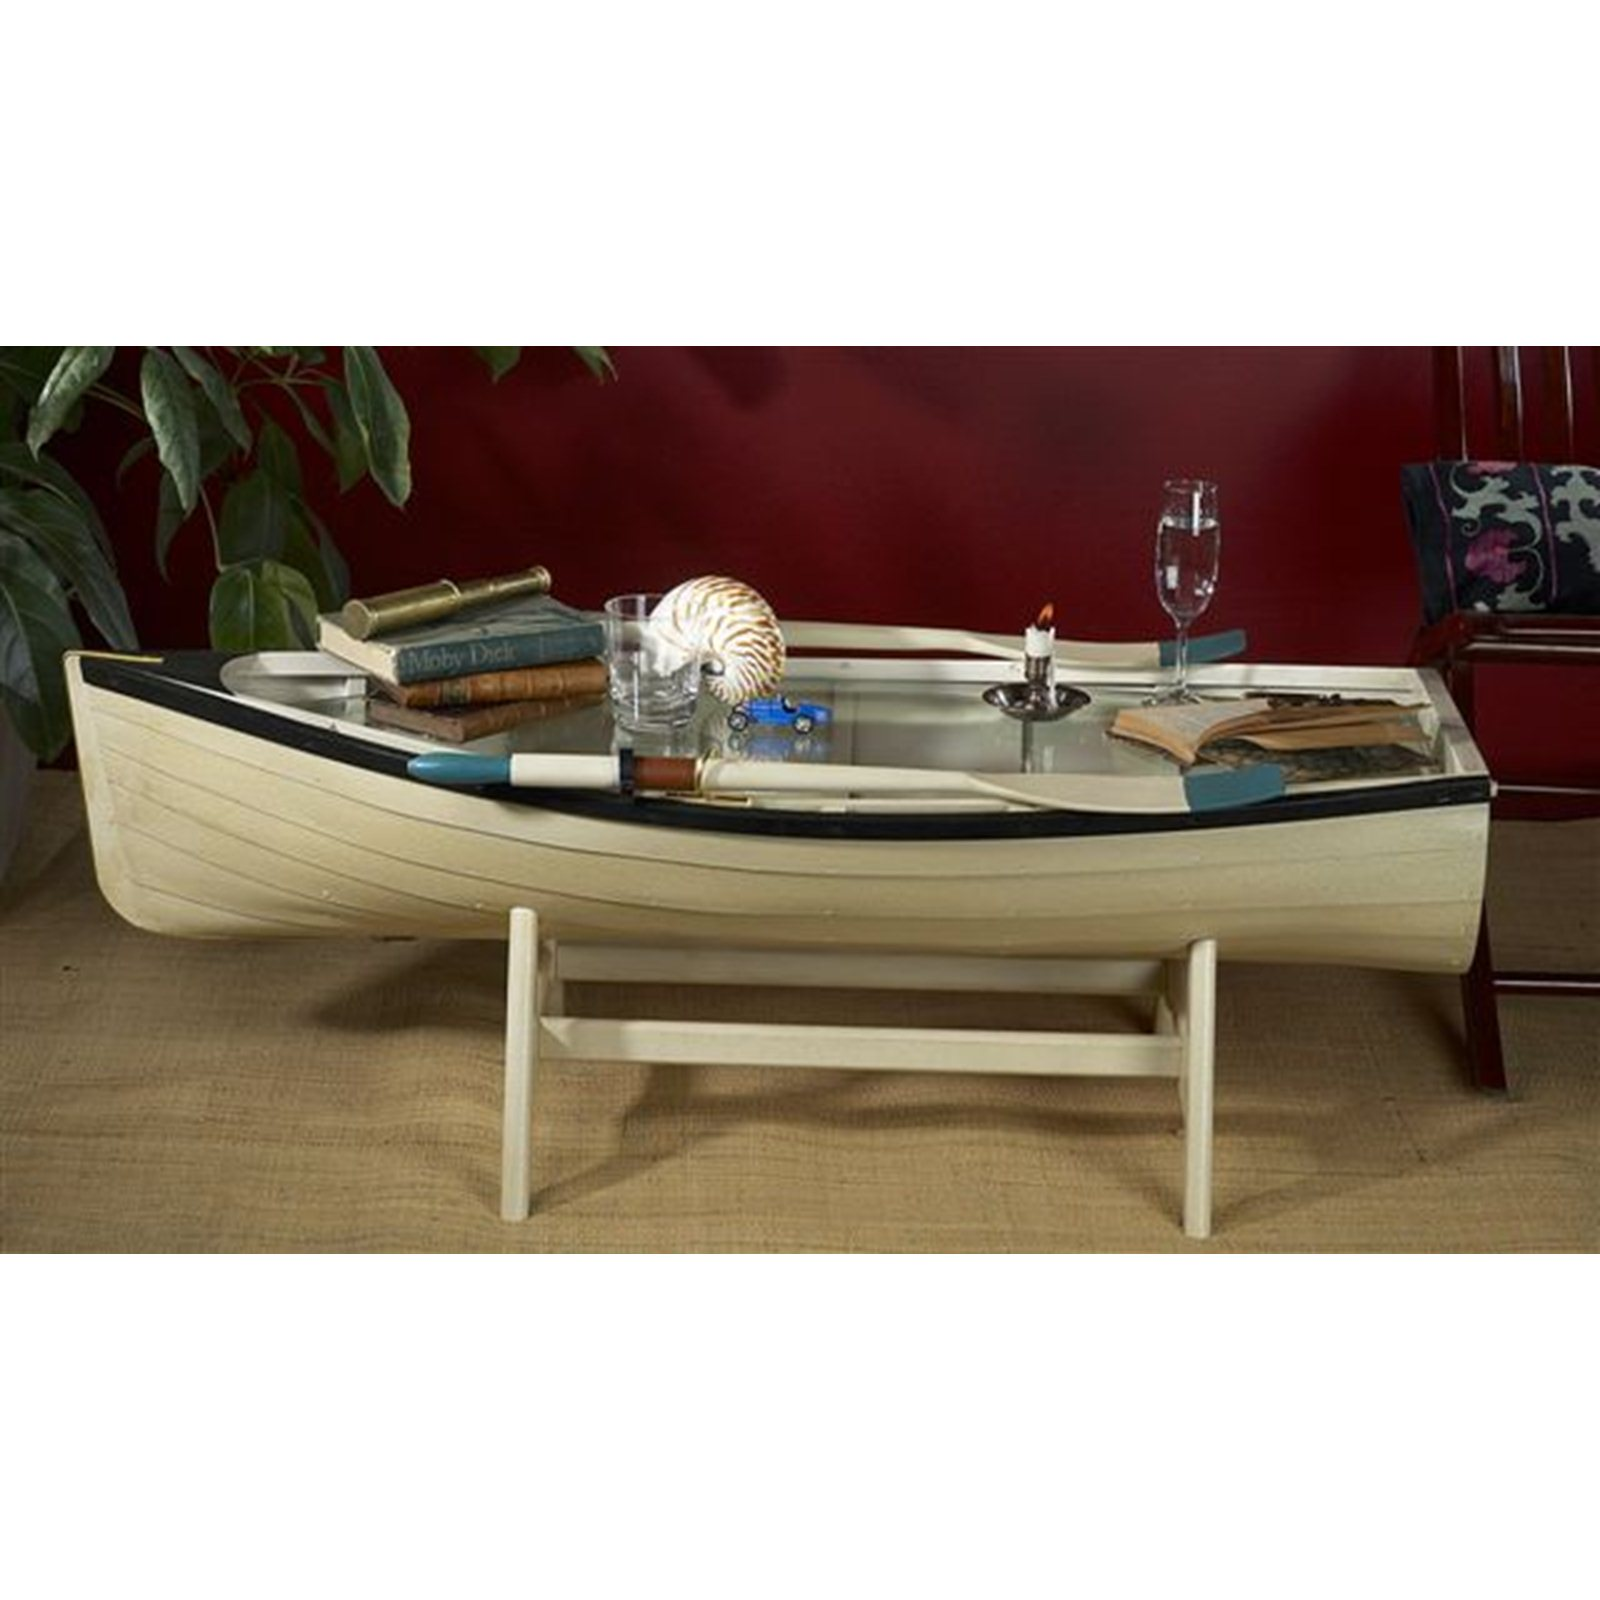 Dory Bookshelf/Coffee Table Image